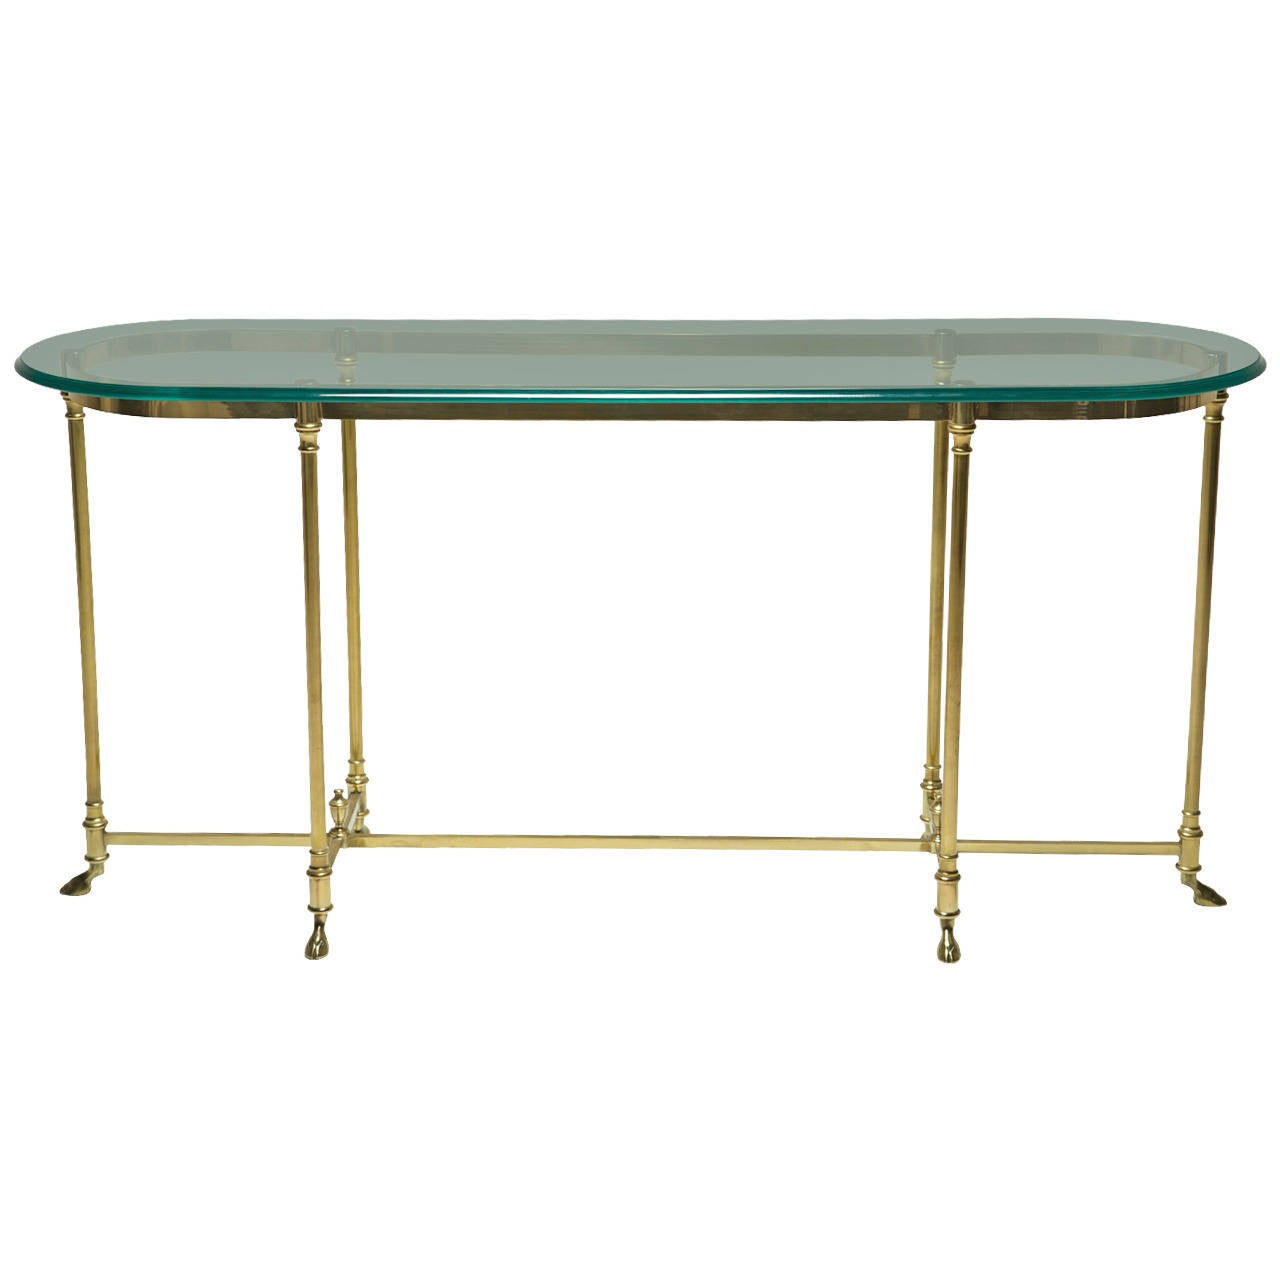 a brass labarge hollywood regency console table with hoof feet at